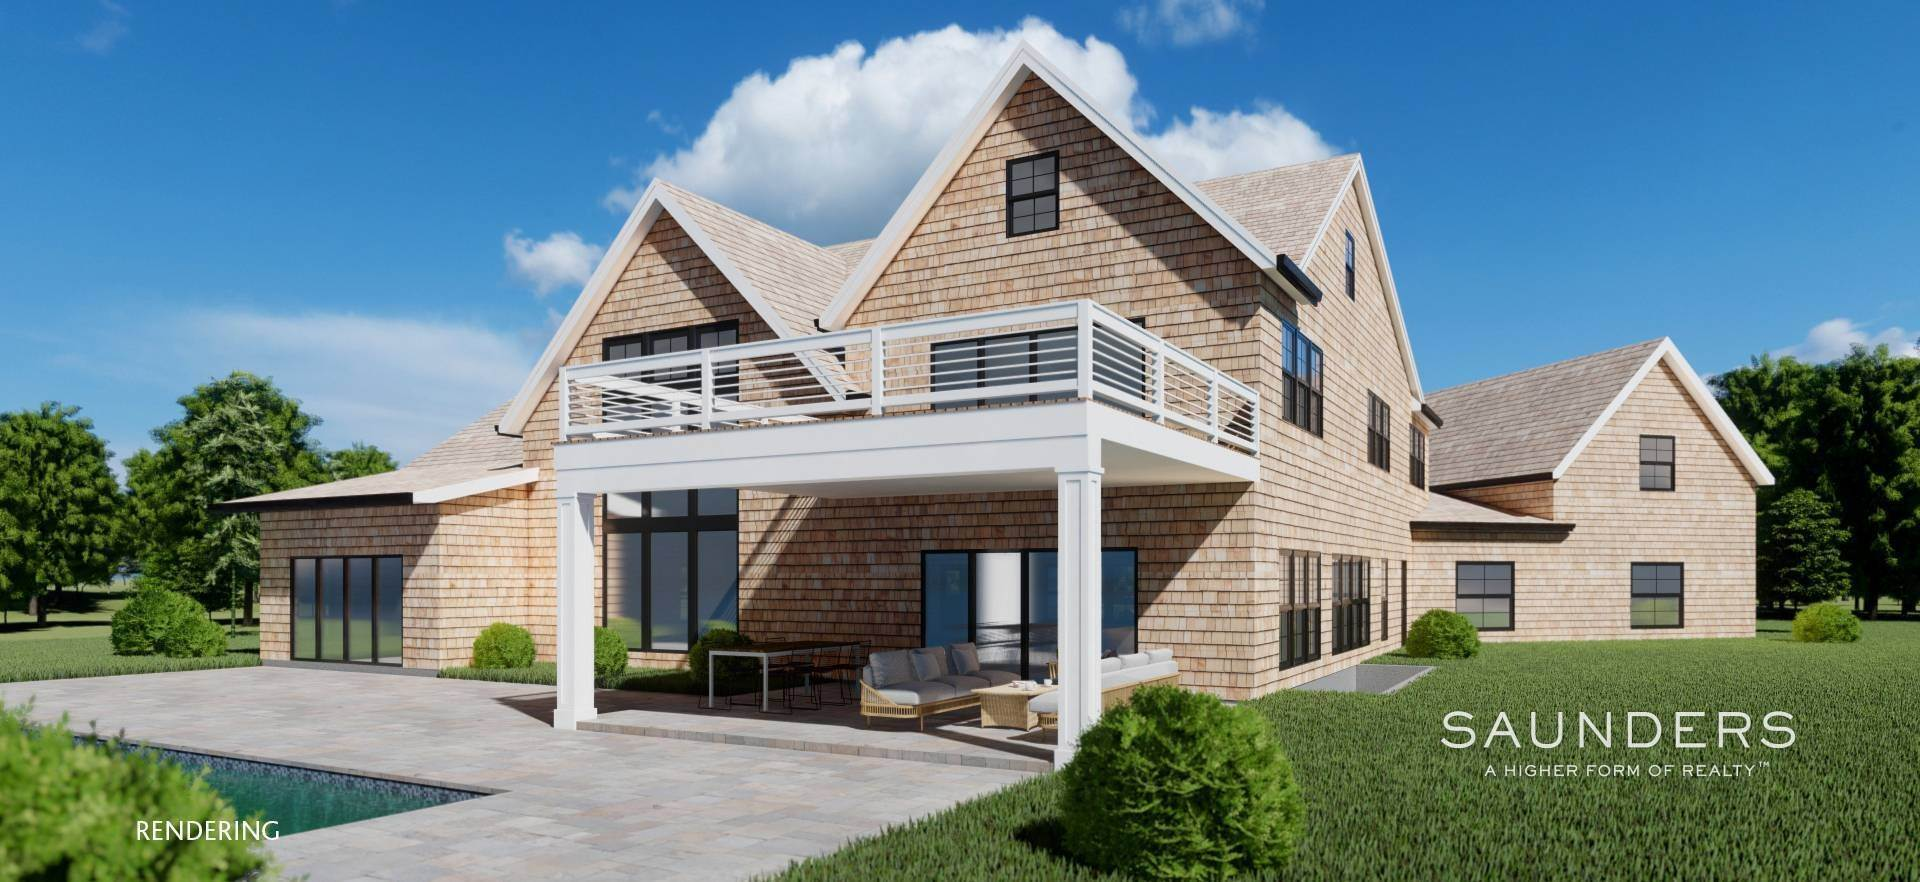 8. Single Family Homes for Sale at Sagaponack New Construction With Pool And Tennis 21 Forest Crossing, Sagaponack, Southampton Town, NY 11962